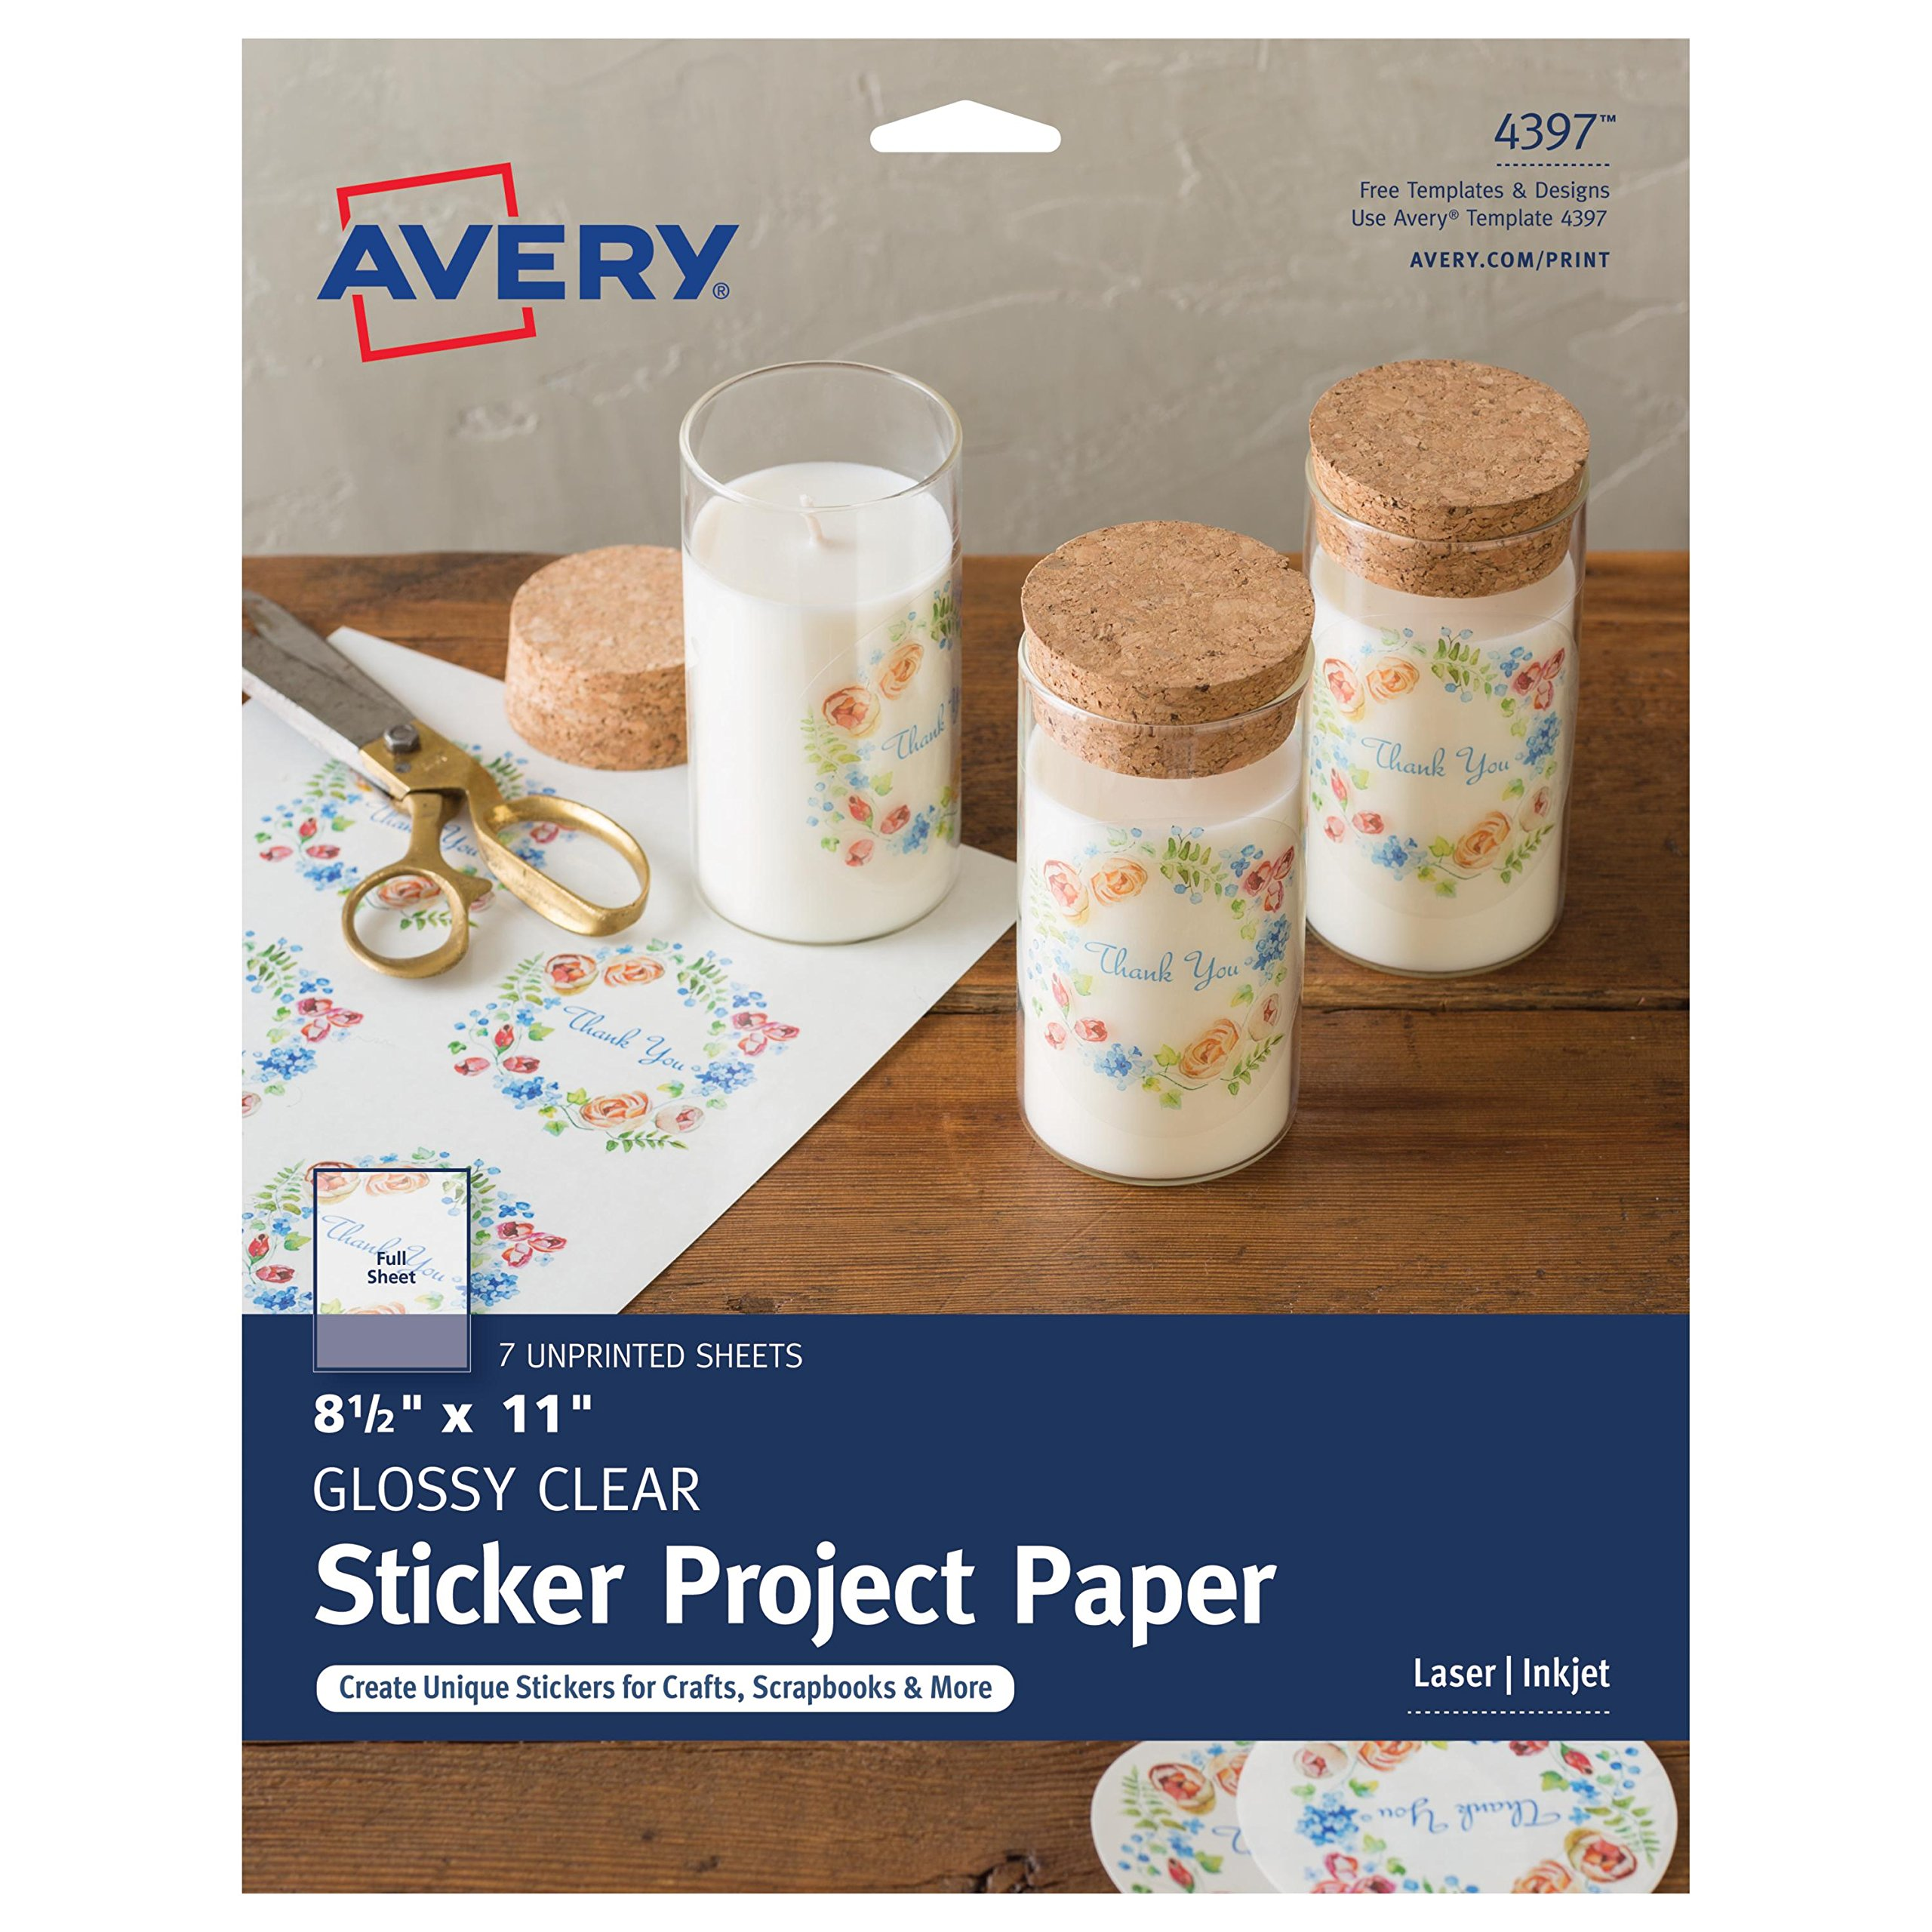 Avery Full-Sheet Sticker Project Paper, Glossy Clear, 8-1/2'' x 11'', Pack of 7 (4397)